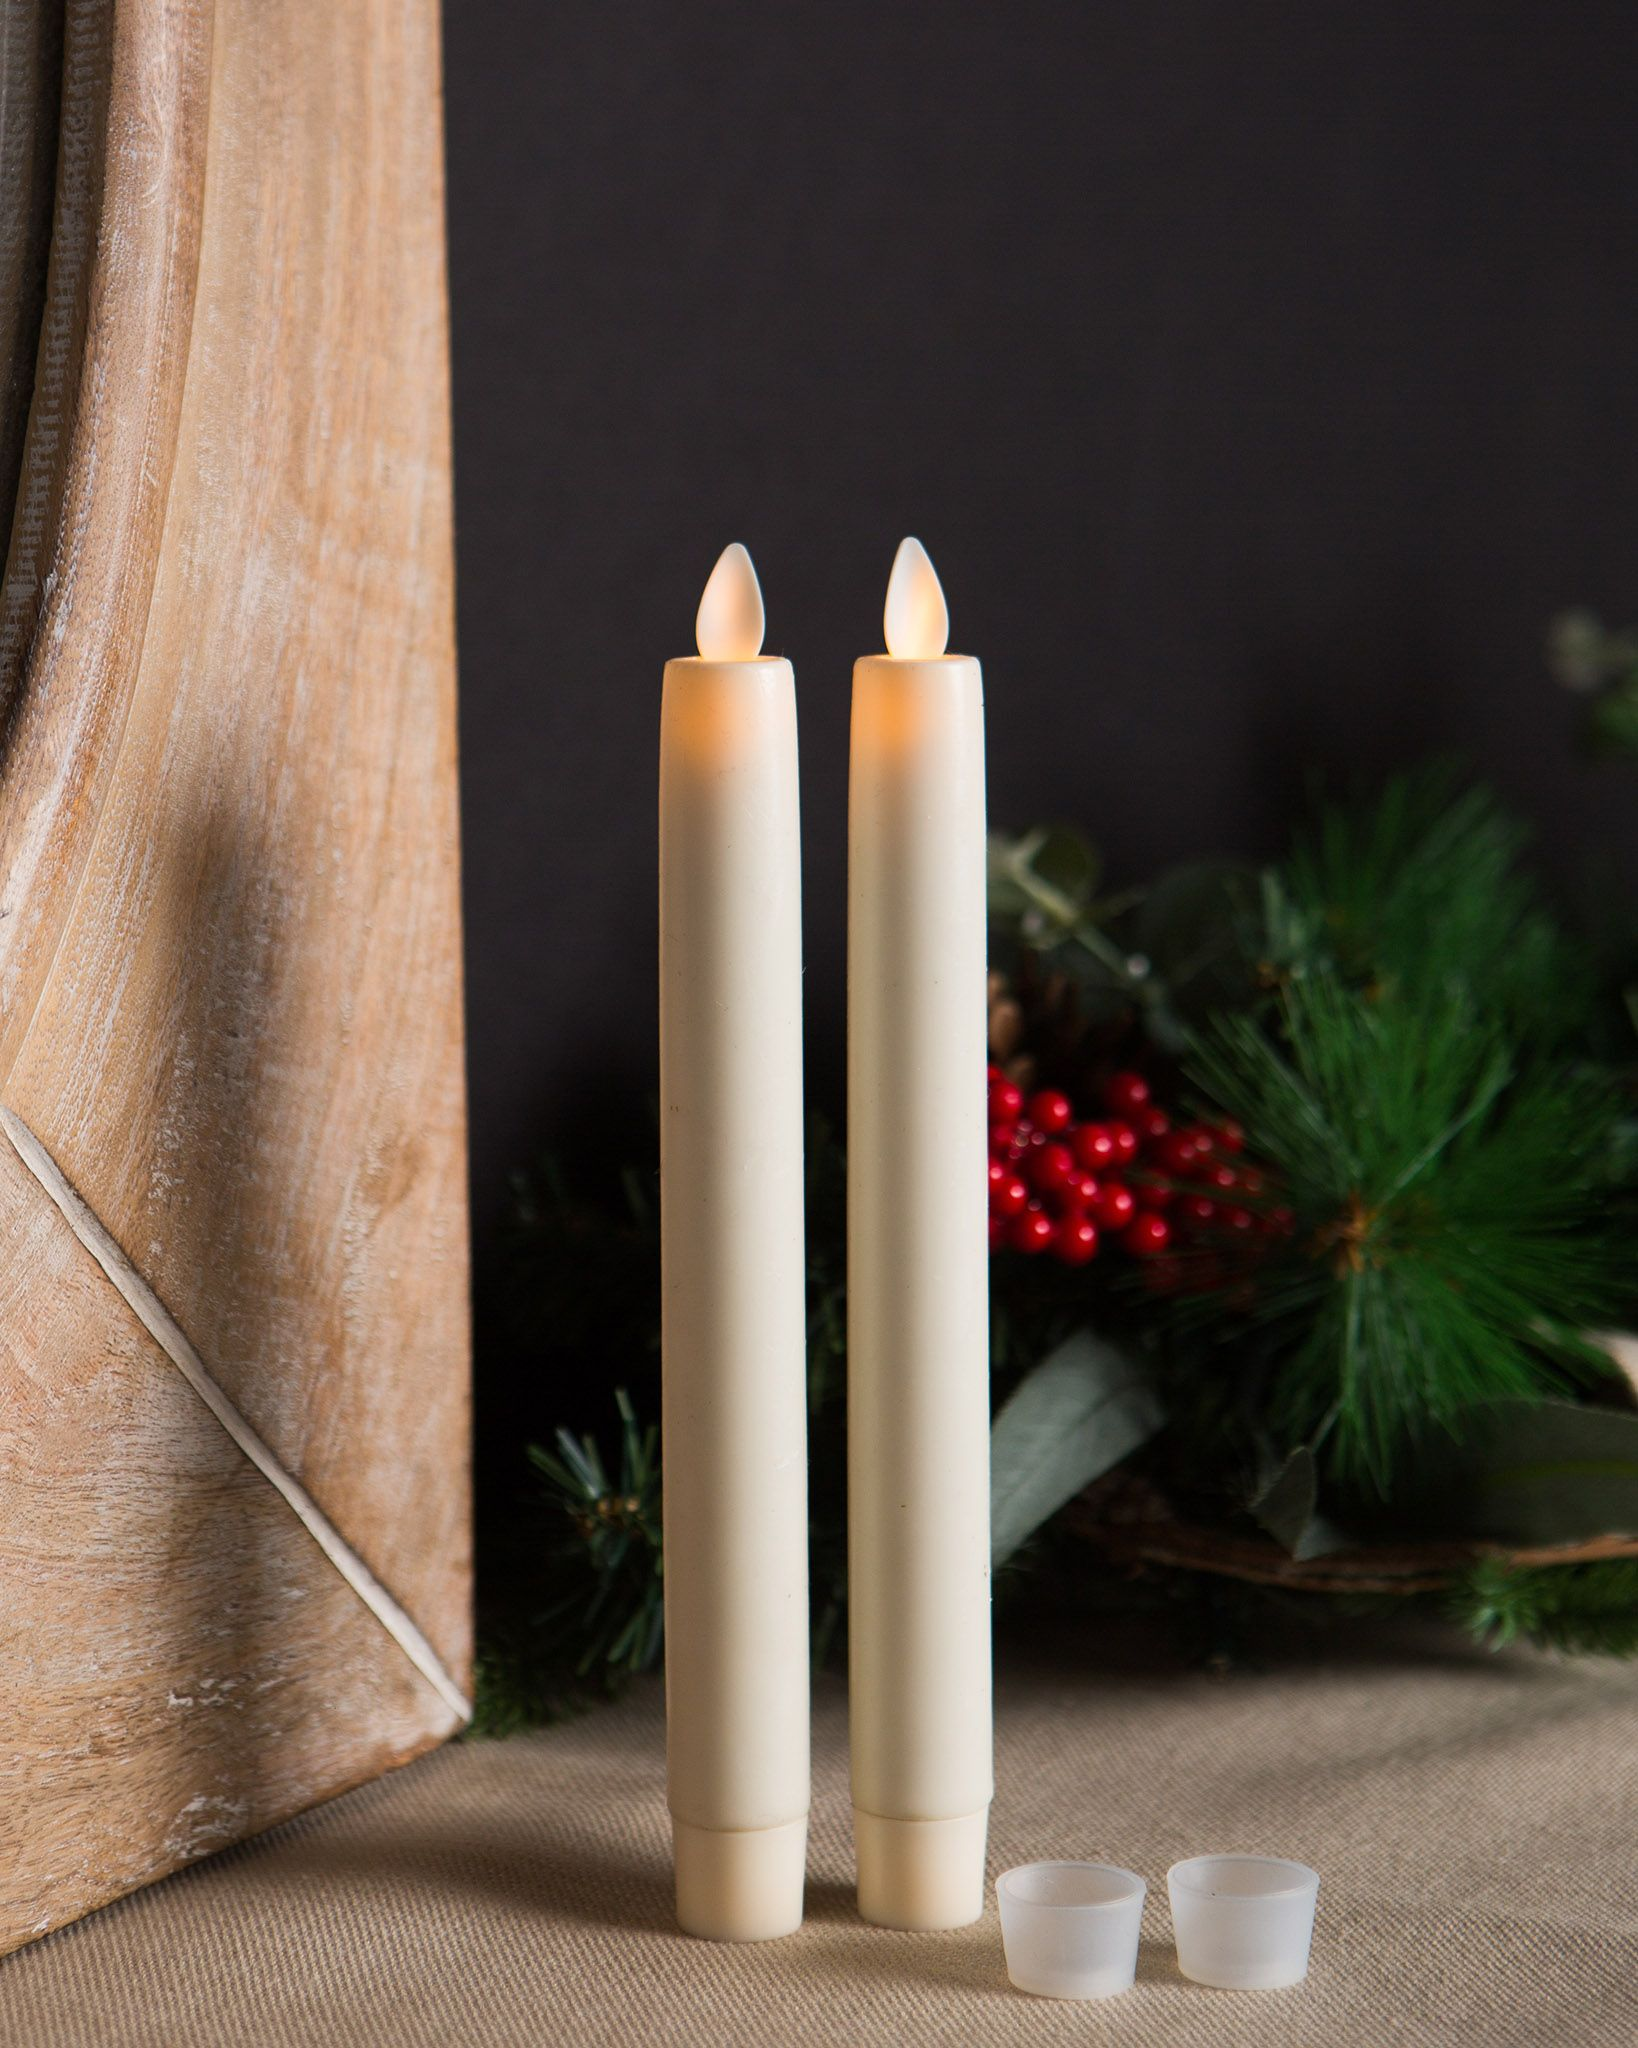 Miracle Flame LED Wax Taper Candles Balsam Hill